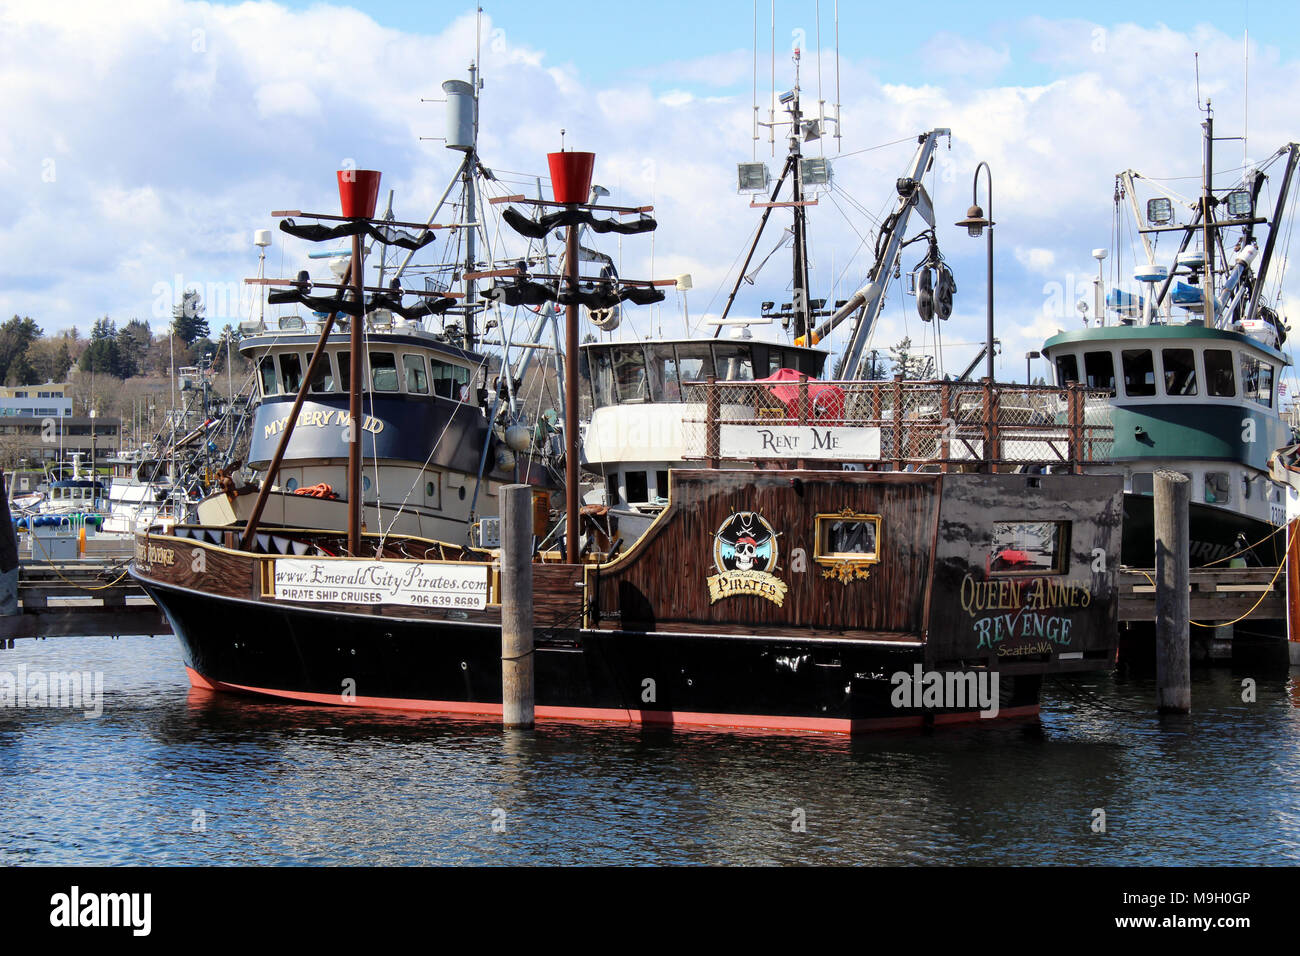 For rent pirate ship docked at the Fisherman's terminal in Seattle - Stock Image